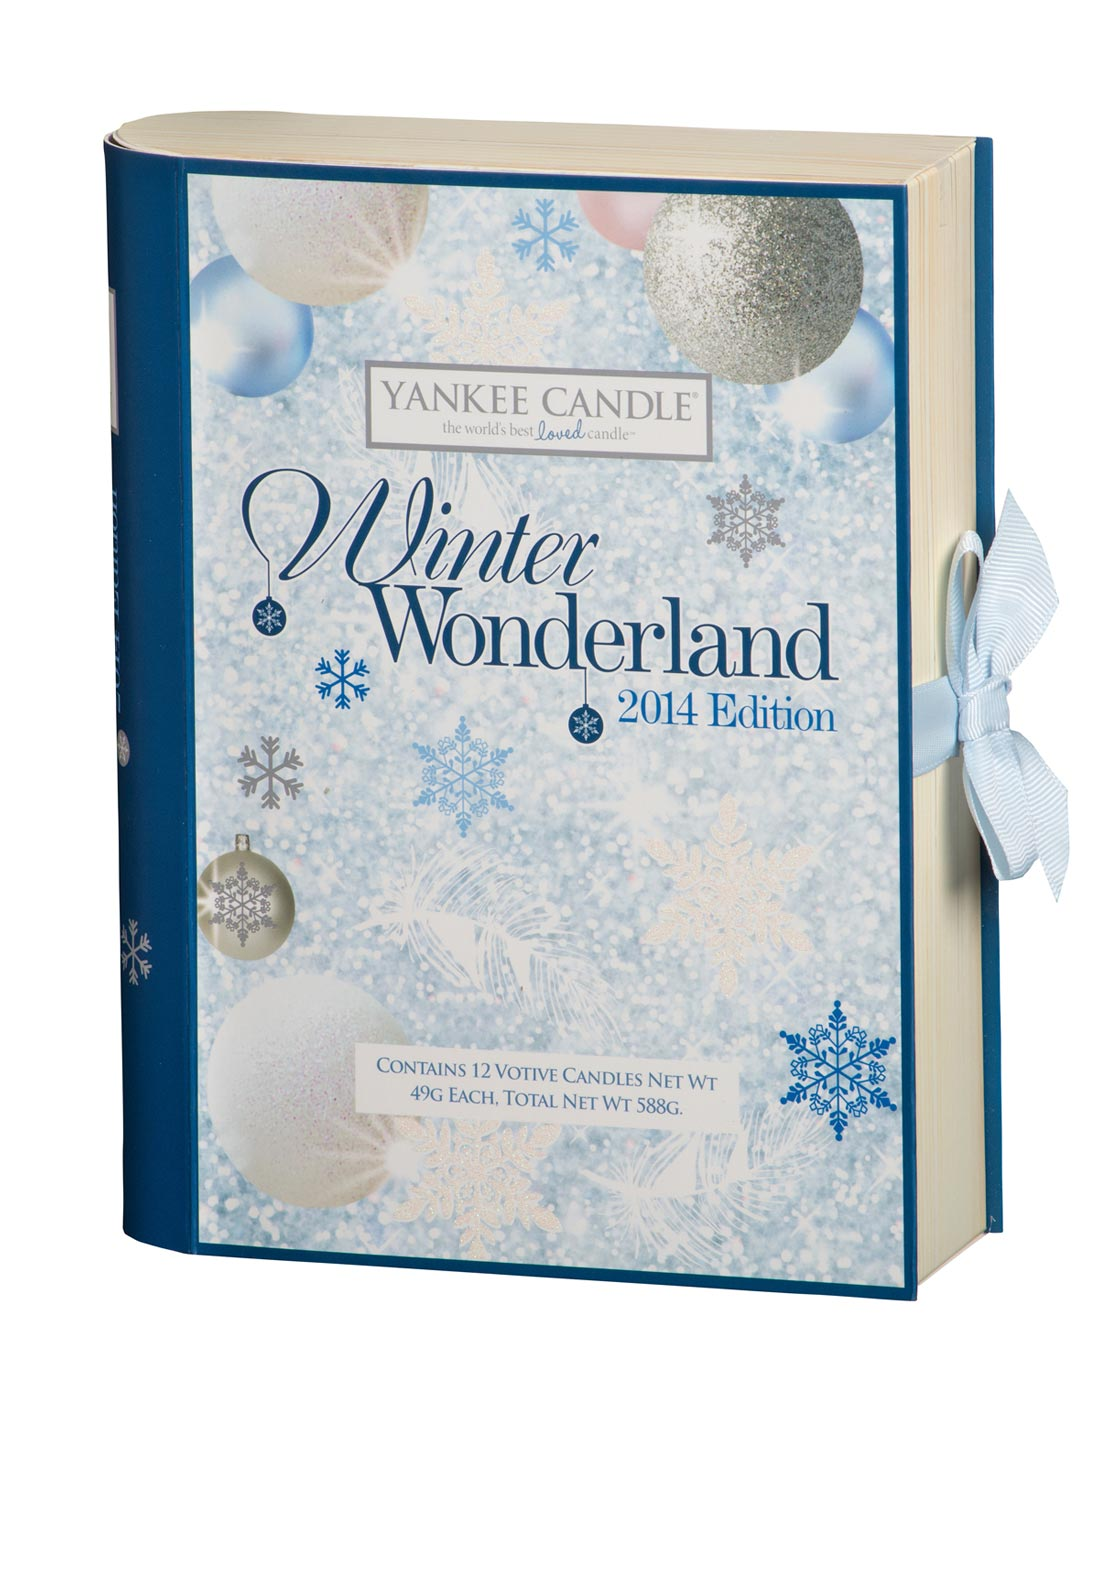 Yankee Candle Christmas Winter Wonderland 12 Votive Candle Gift Set